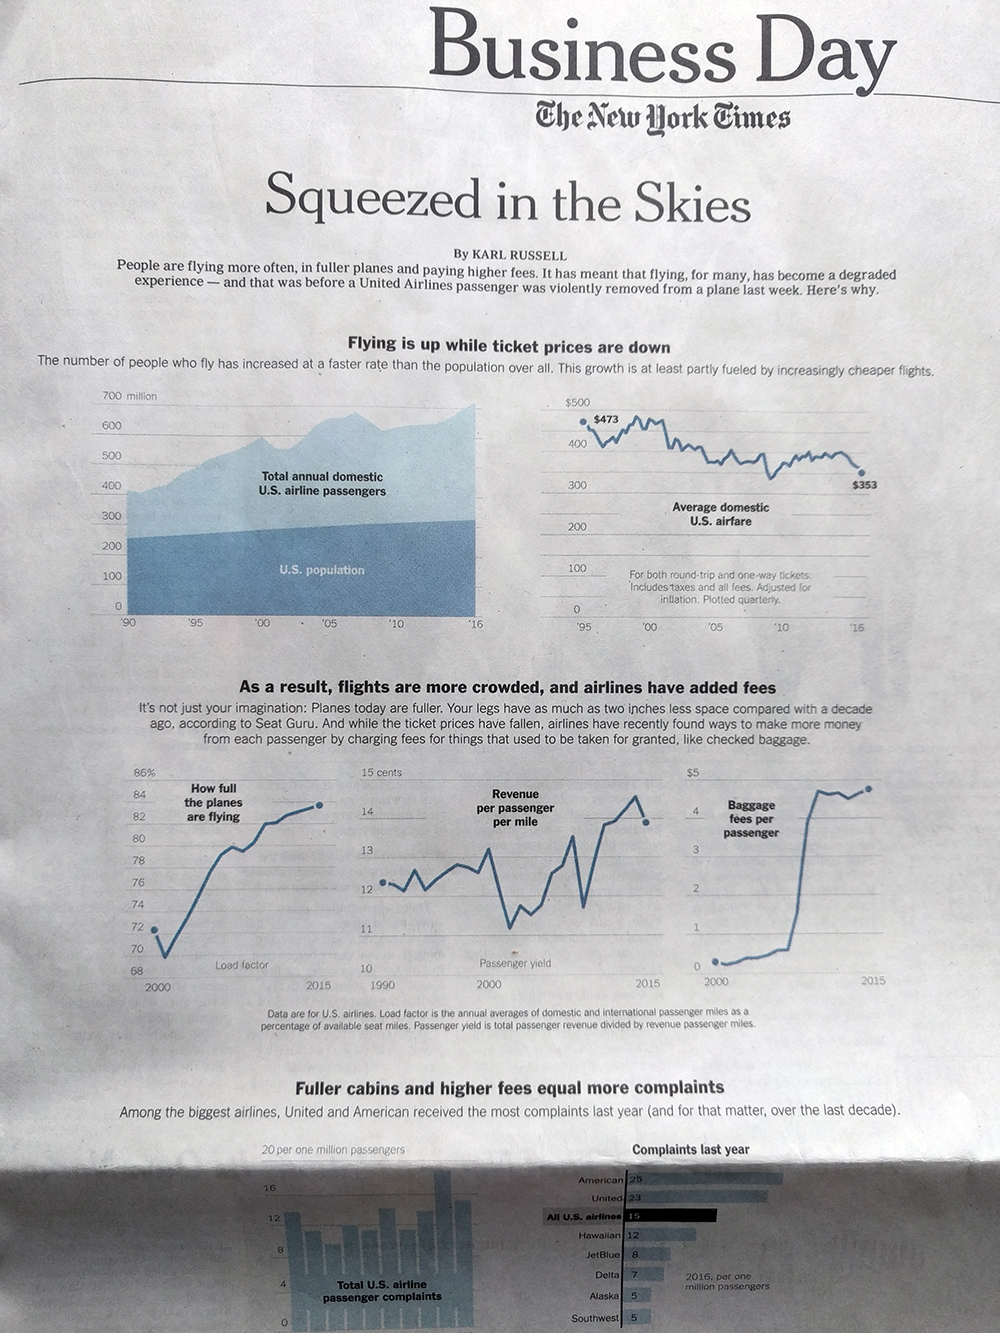 The graphics above the fold